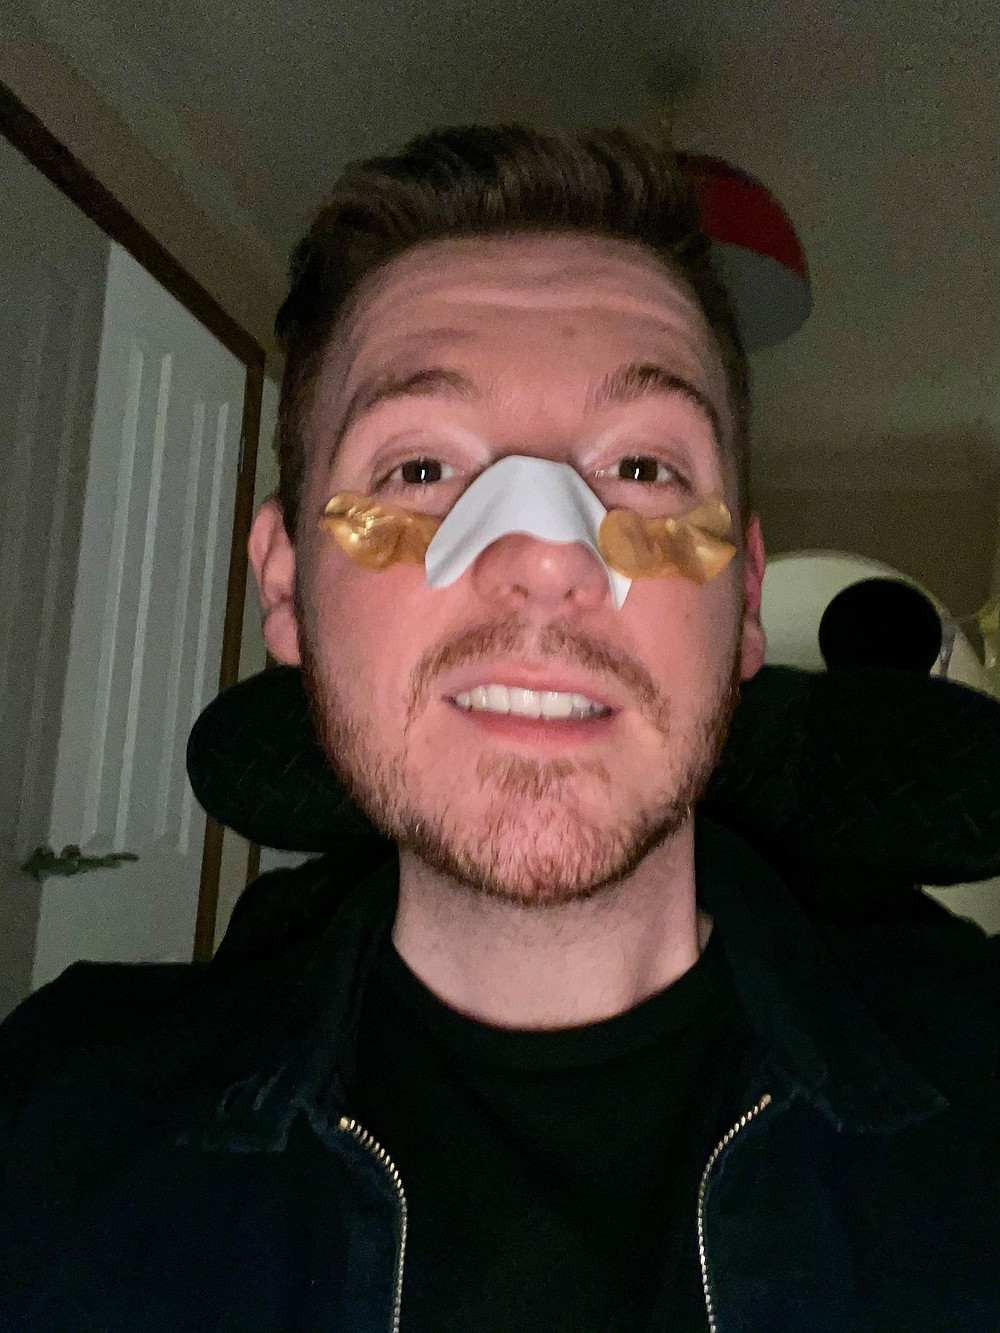 selfie of Ross with a nose strip on his face and two gold eye patches